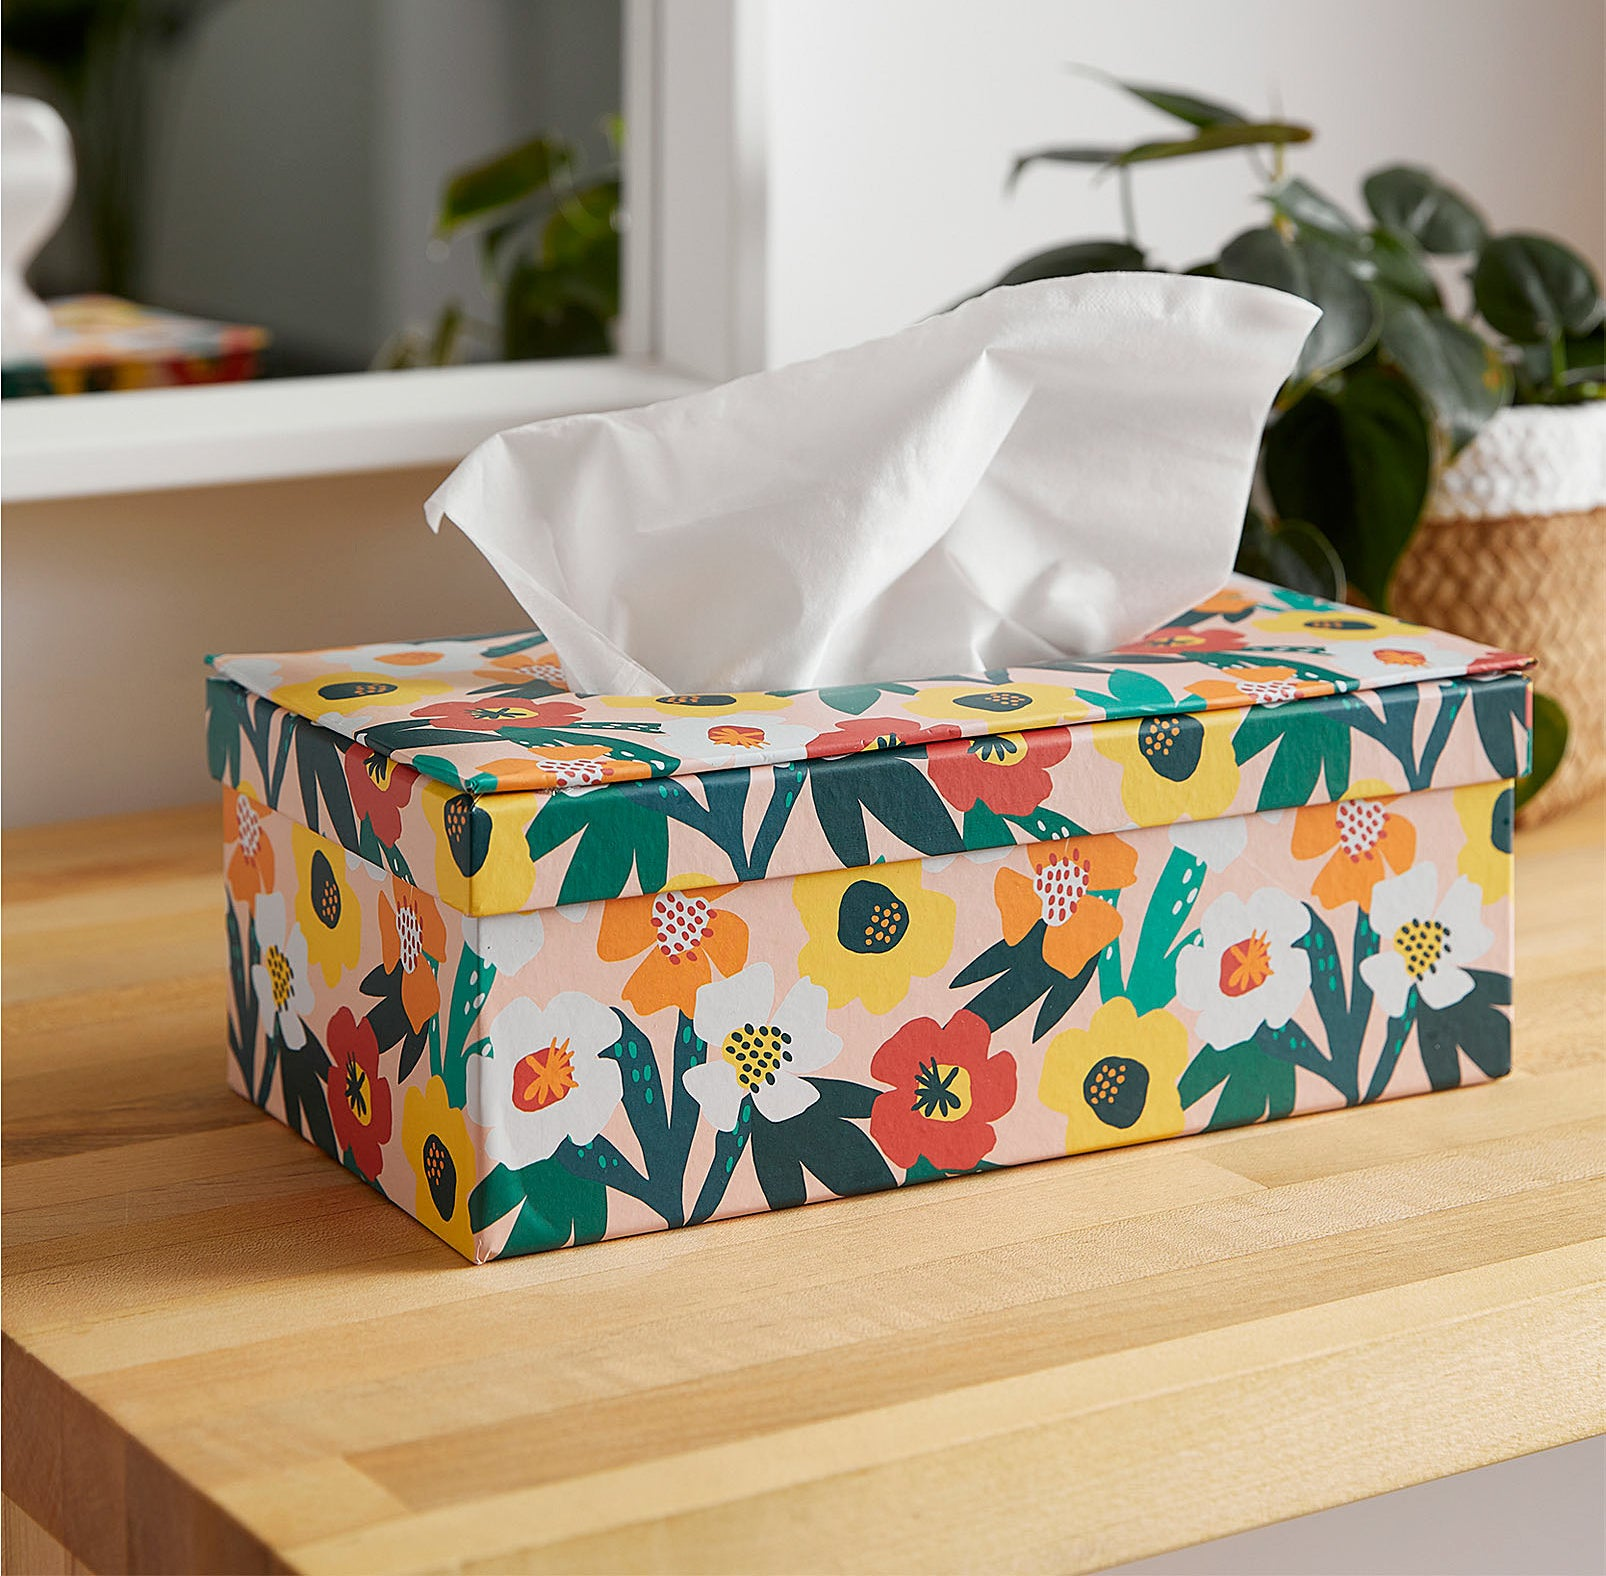 A tissue box on a wooden table